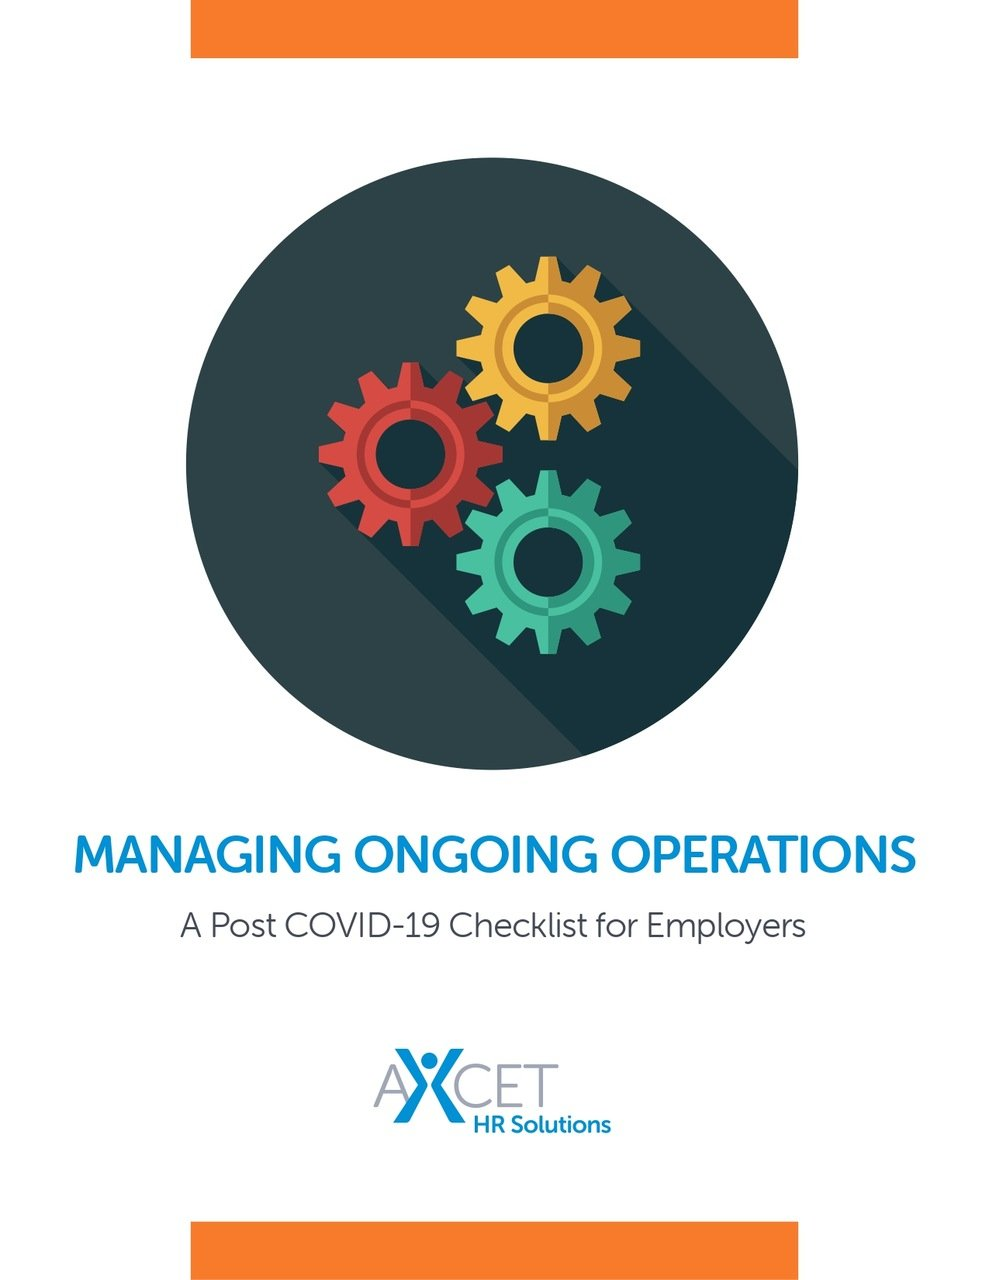 Managing Ongoing Operations - COVID-19